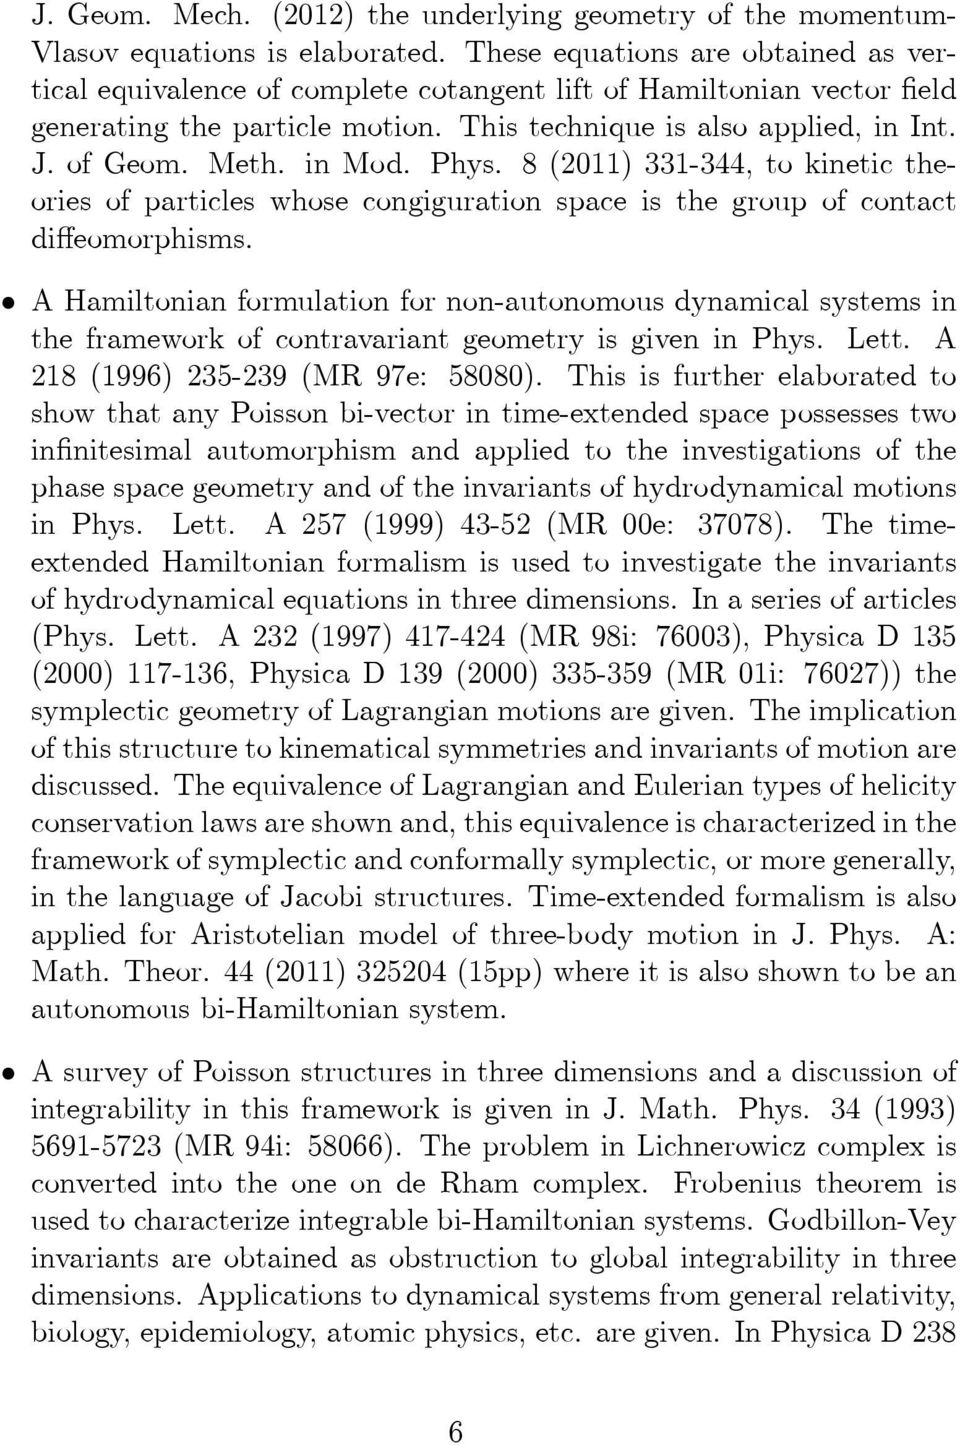 in Mod. Phys. 8 (2011) 331-344, to kinetic theories of particles whose congiguration space is the group of contact dieomorphisms.